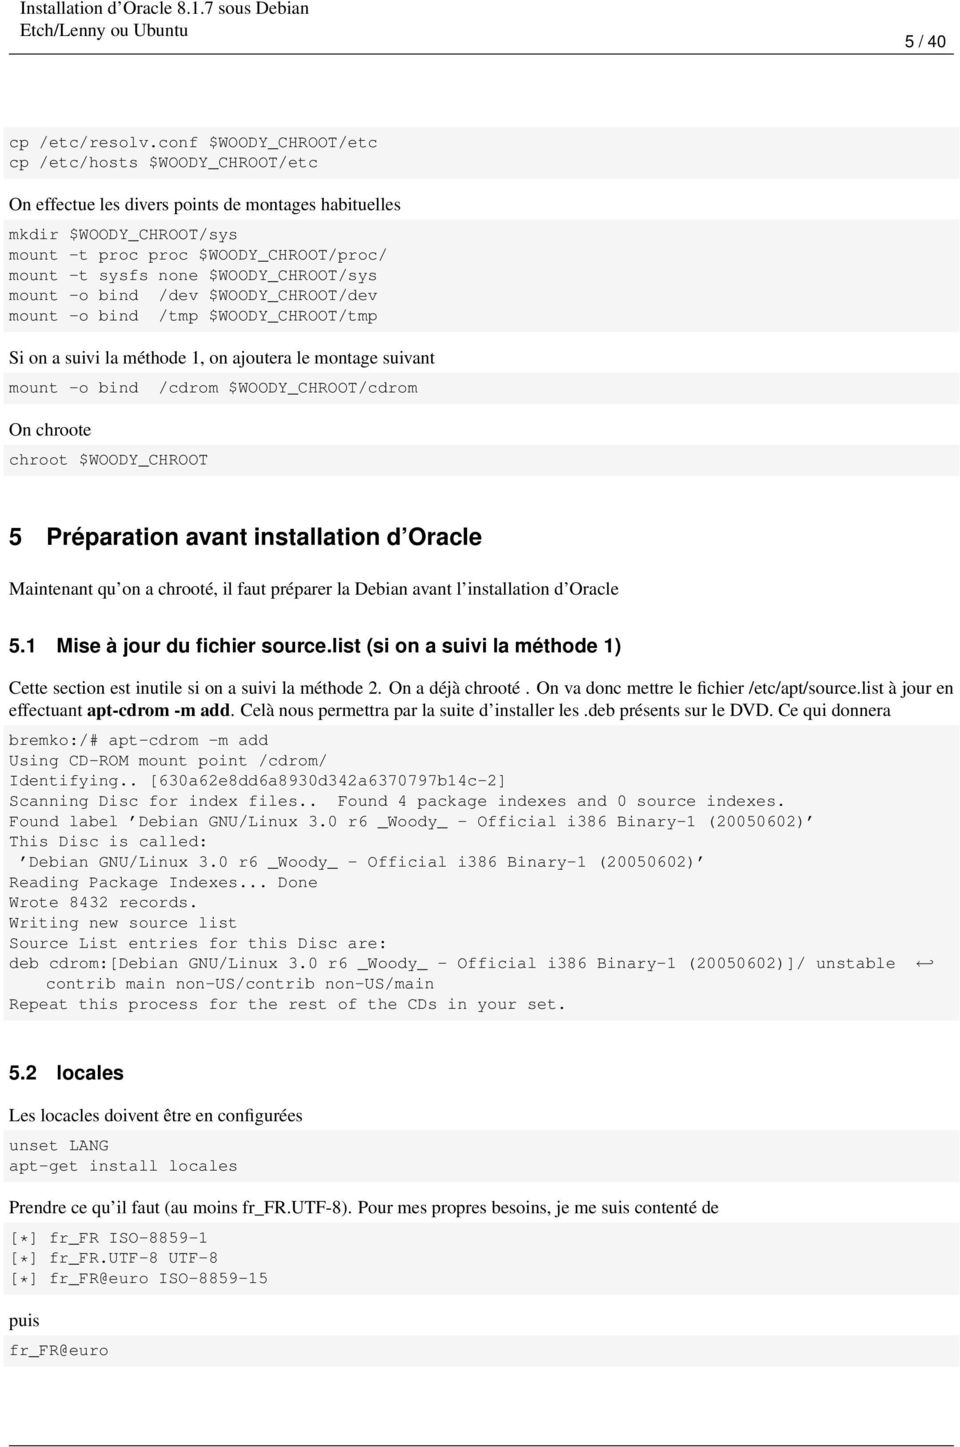 $WOODY_CHROOT/sys mount -o bind /dev $WOODY_CHROOT/dev mount -o bind /tmp $WOODY_CHROOT/tmp Si on a suivi la méthode 1, on ajoutera le montage suivant mount -o bind On chroote chroot $WOODY_CHROOT